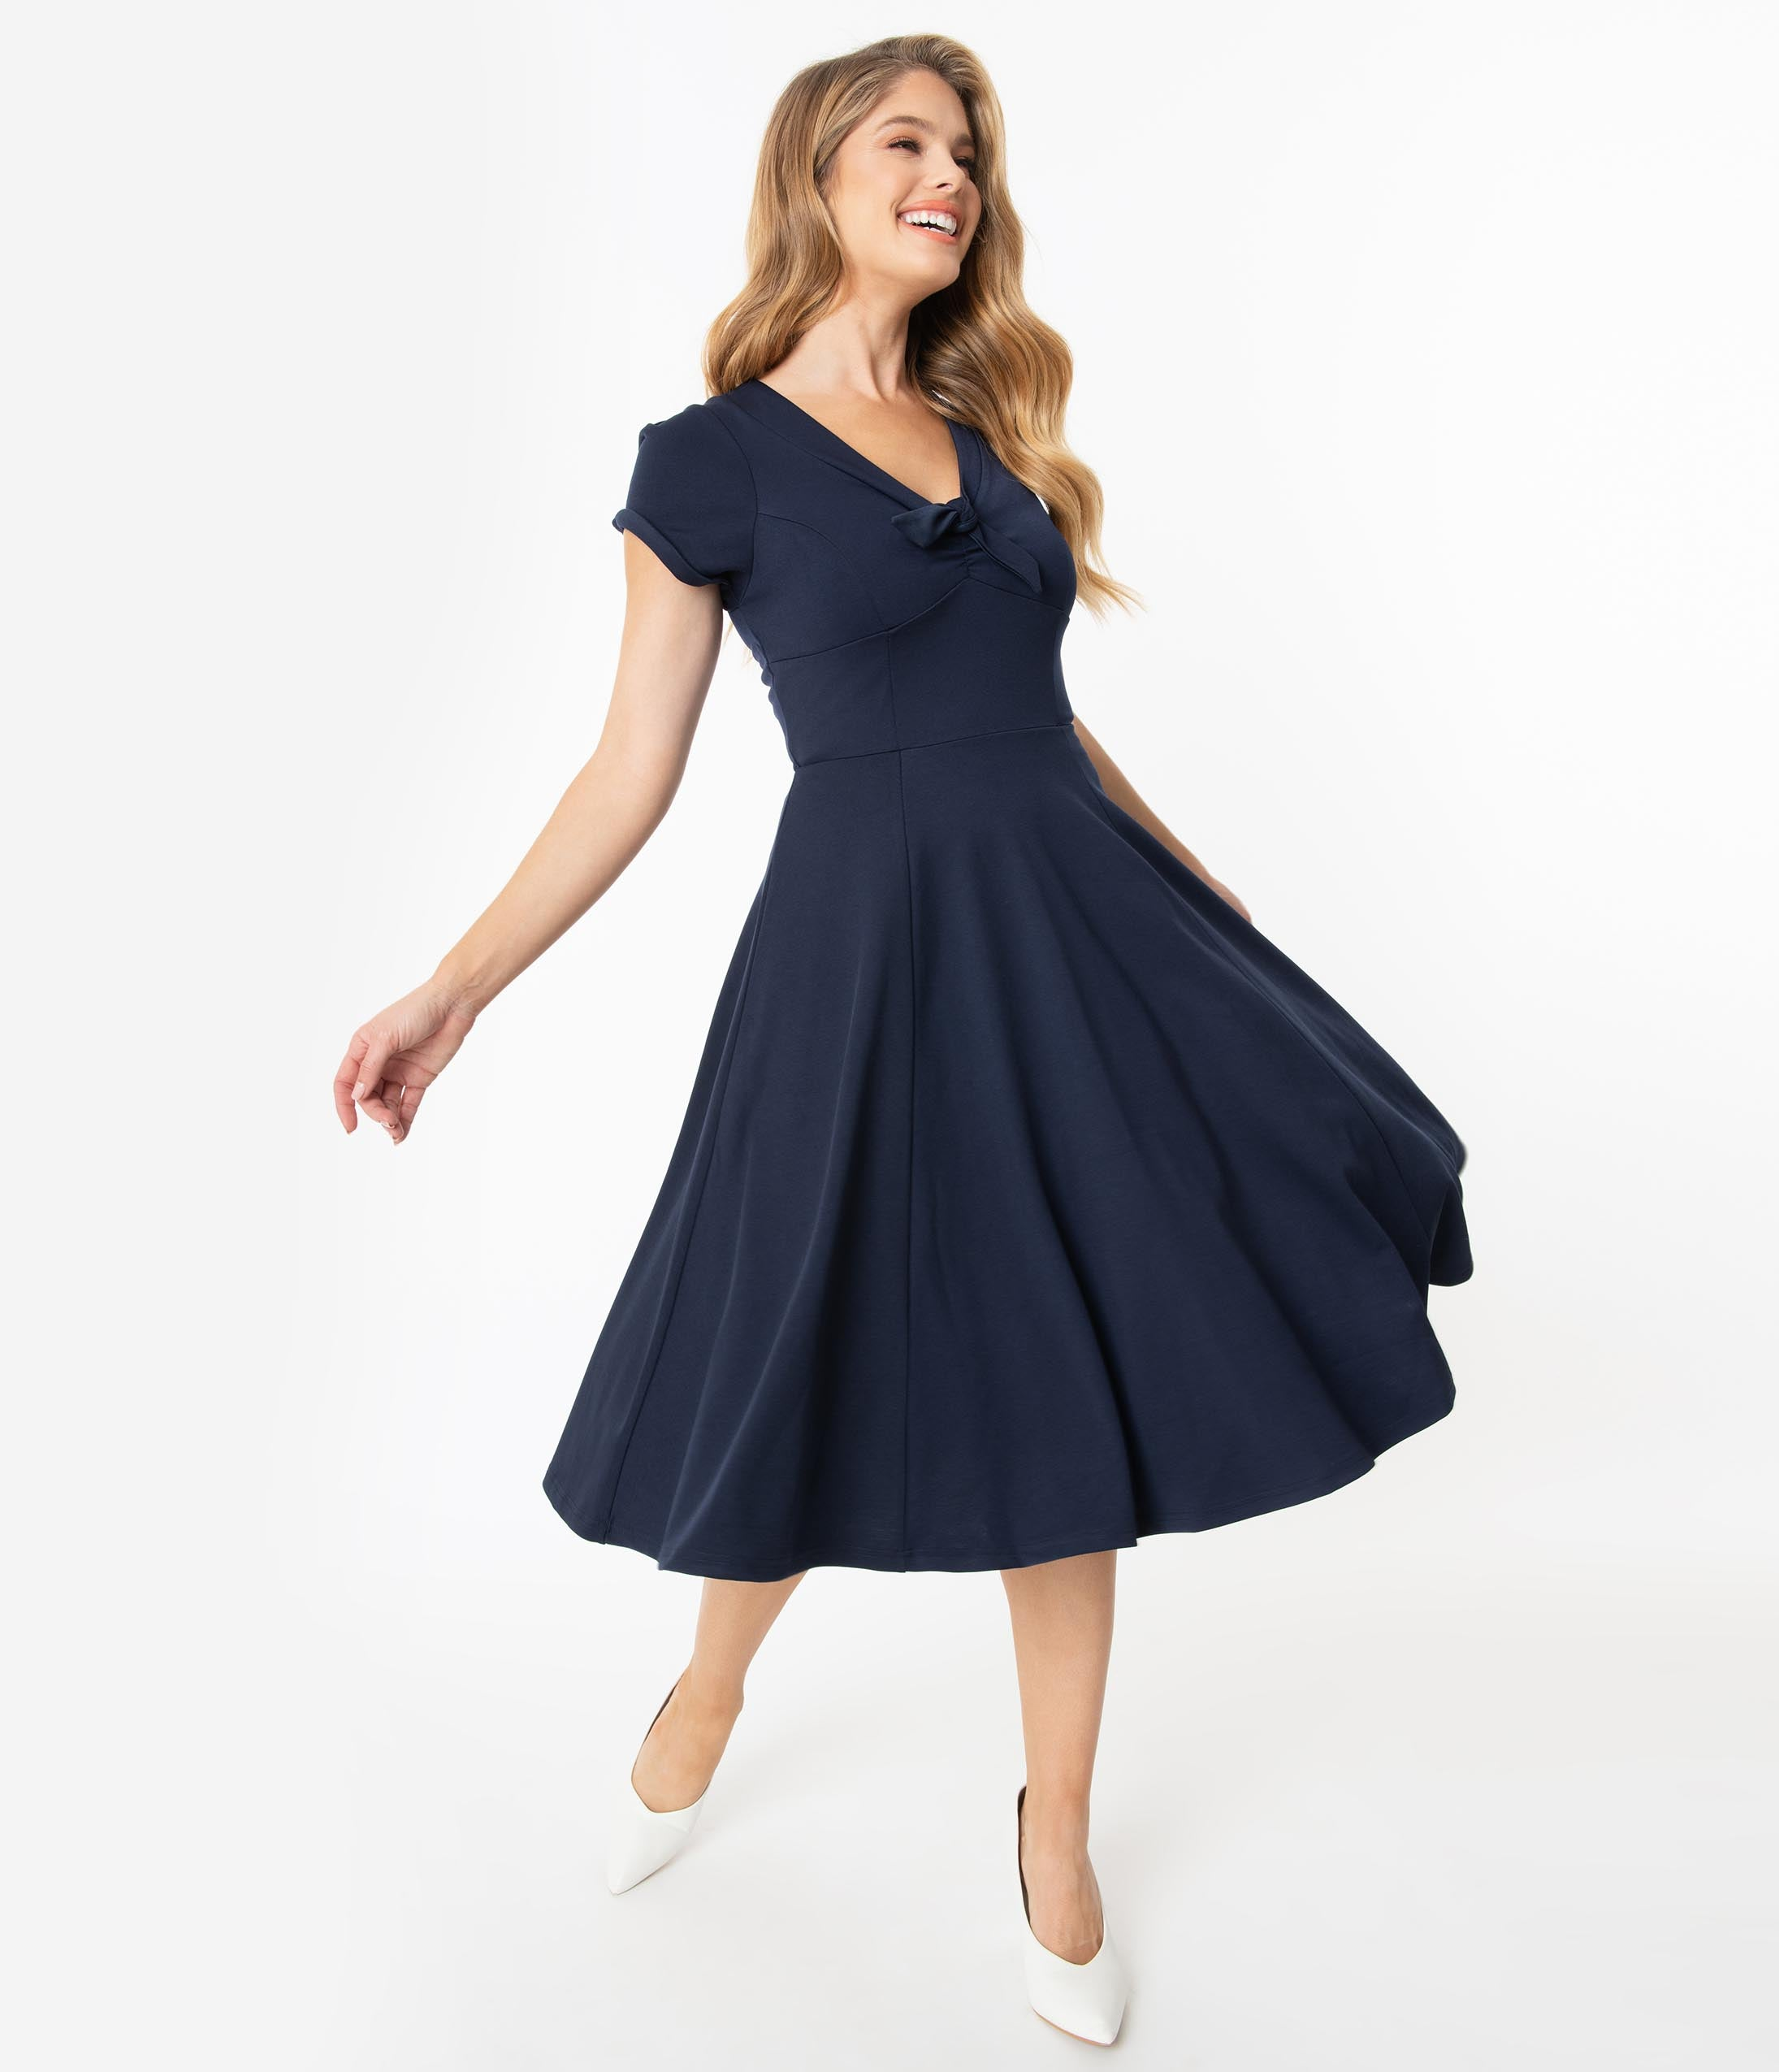 500 Vintage Style Dresses for Sale | Vintage Inspired Dresses Unique Vintage 1940S Style Navy Blue Natalie Swing Dress $78.00 AT vintagedancer.com